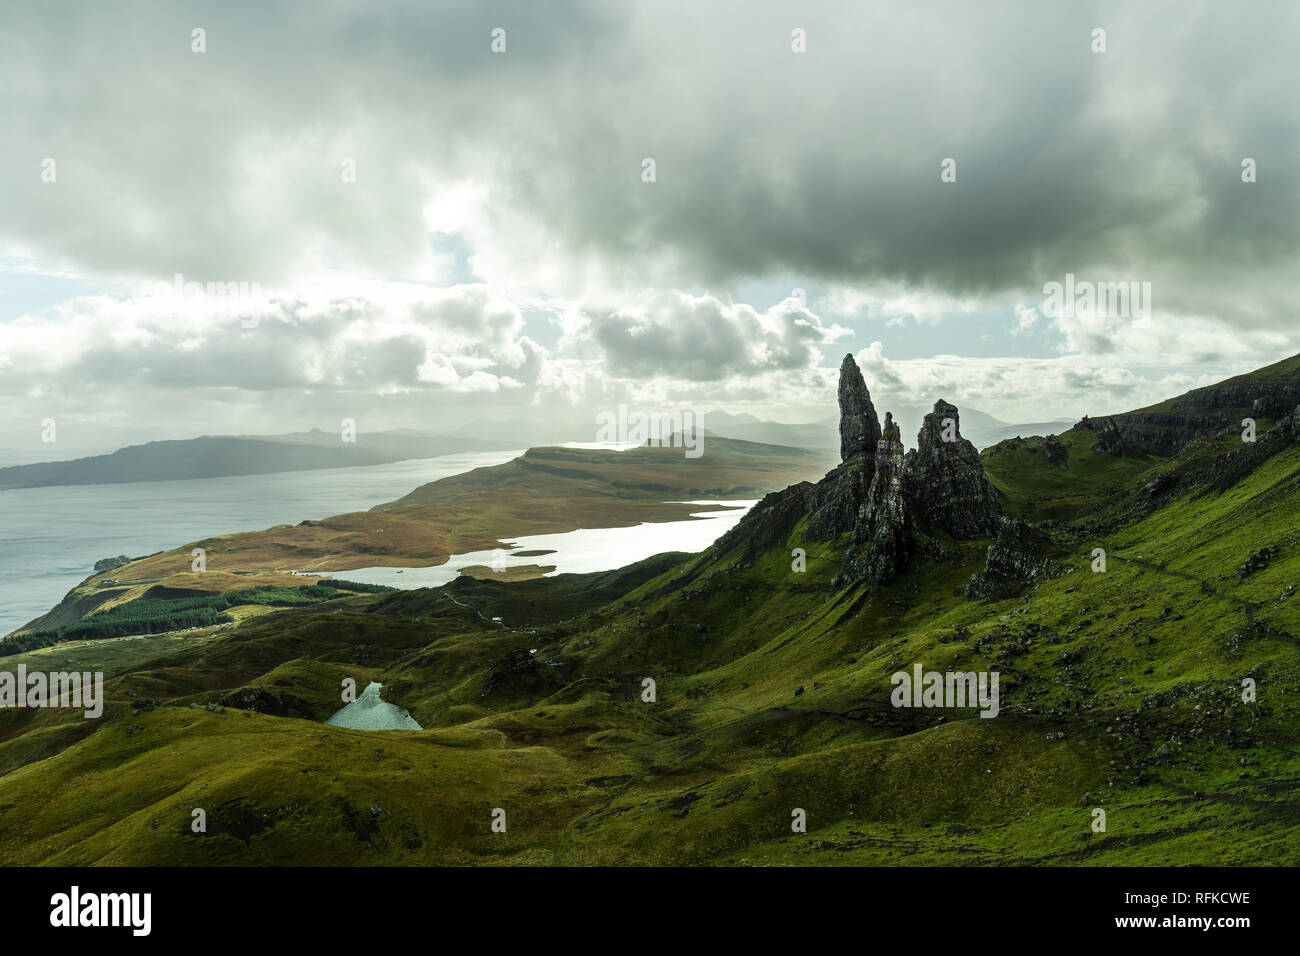 Panorama view of Old Man of Storr as seen from a higher viewpoint with dramatic clouds during autumn (Isle of Skye, Scotland, United Kingdom) - Stock Image